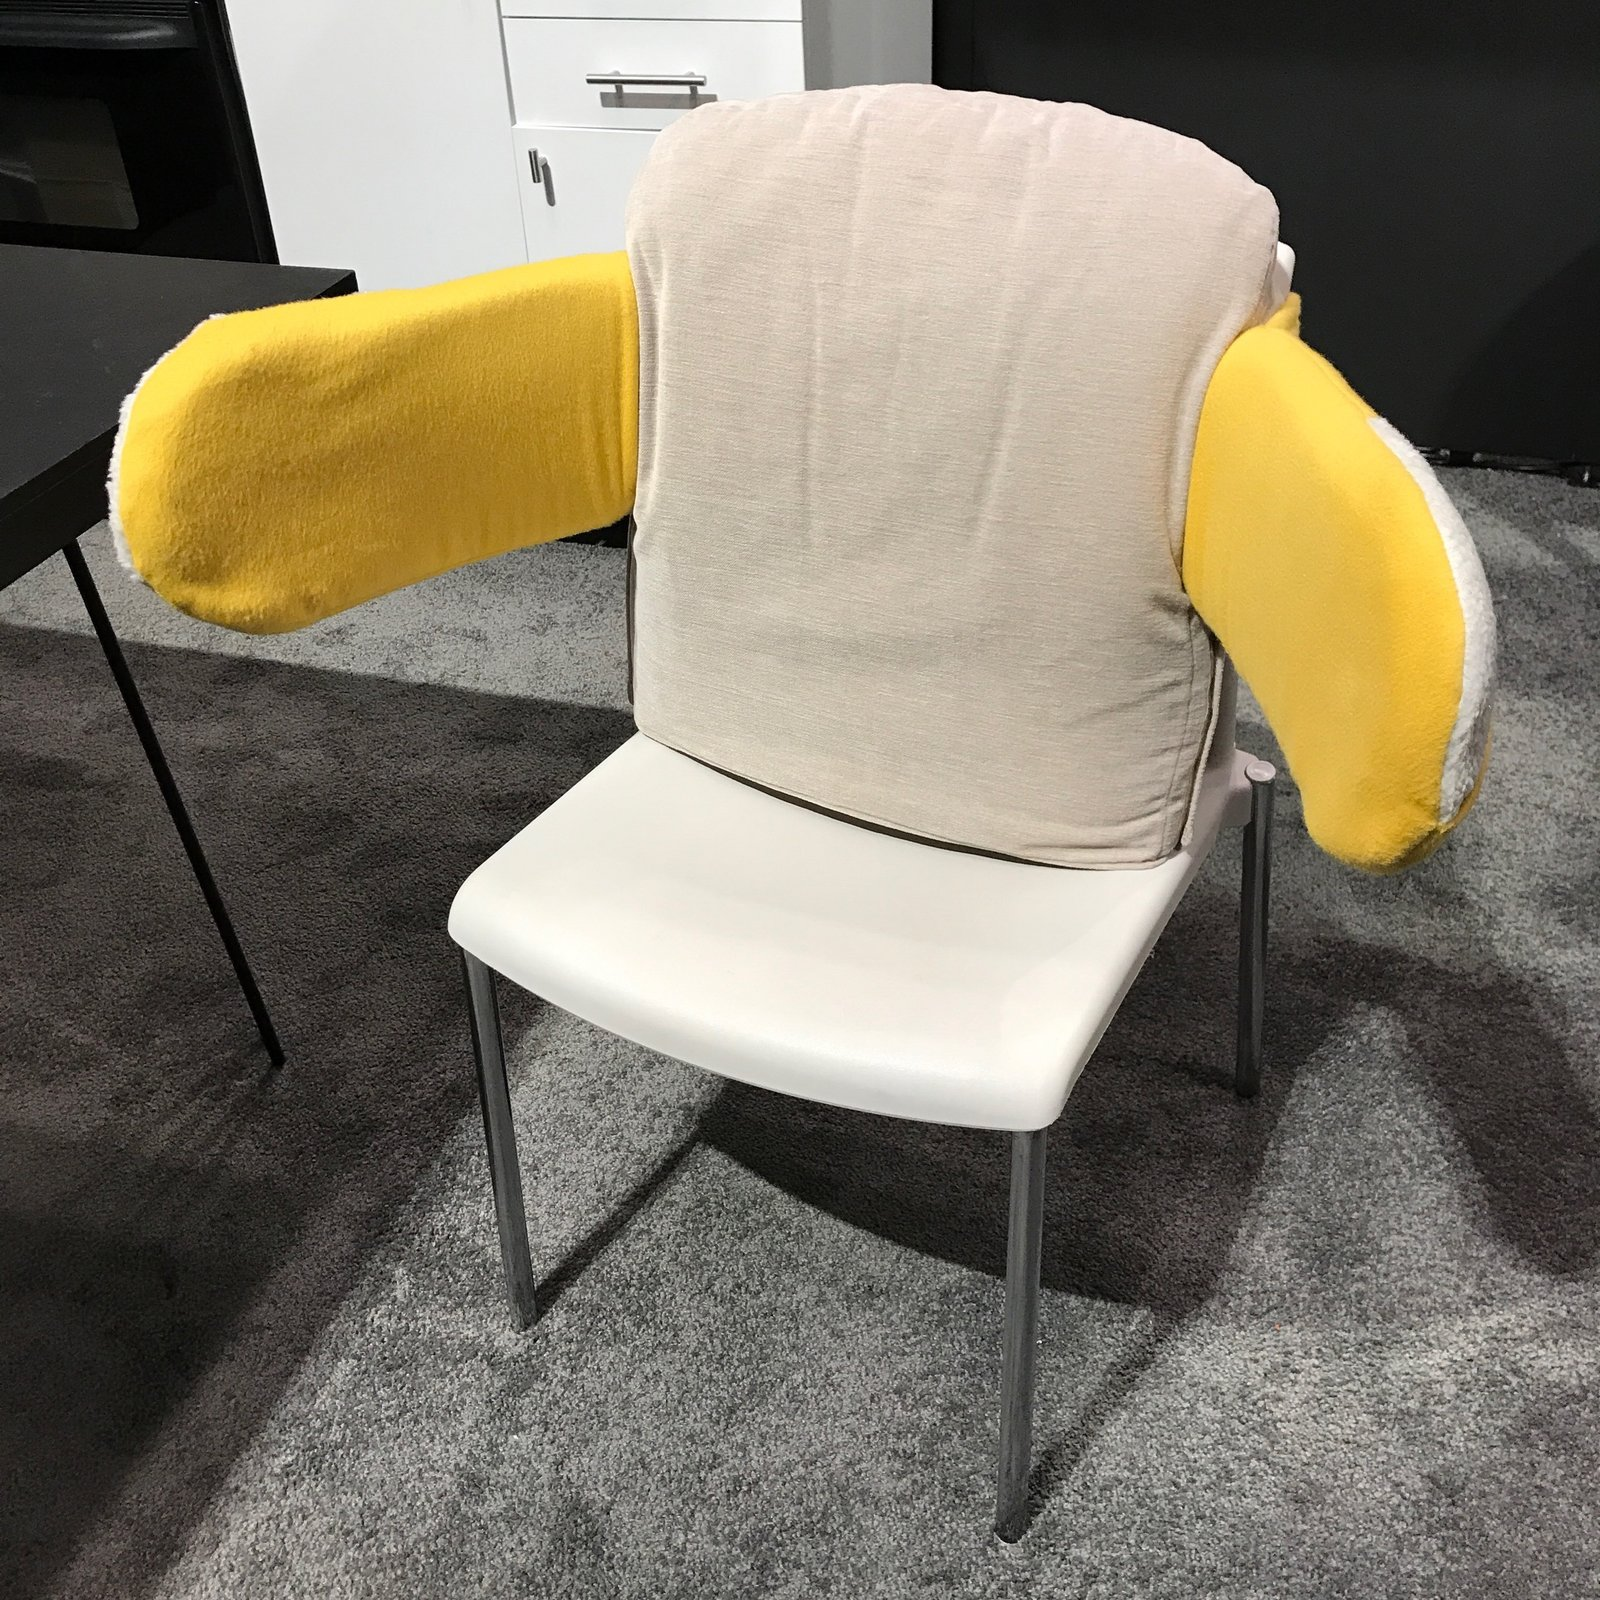 The Hug Chair is a prototype seating piece for Alzheimer's patients, introduced at part of Pratt's installation at ICFF entitled Designed for the Mind. It was created by Nick Petcharatana.  Photo 32 of 36 in The Best of New York Design Week 2017